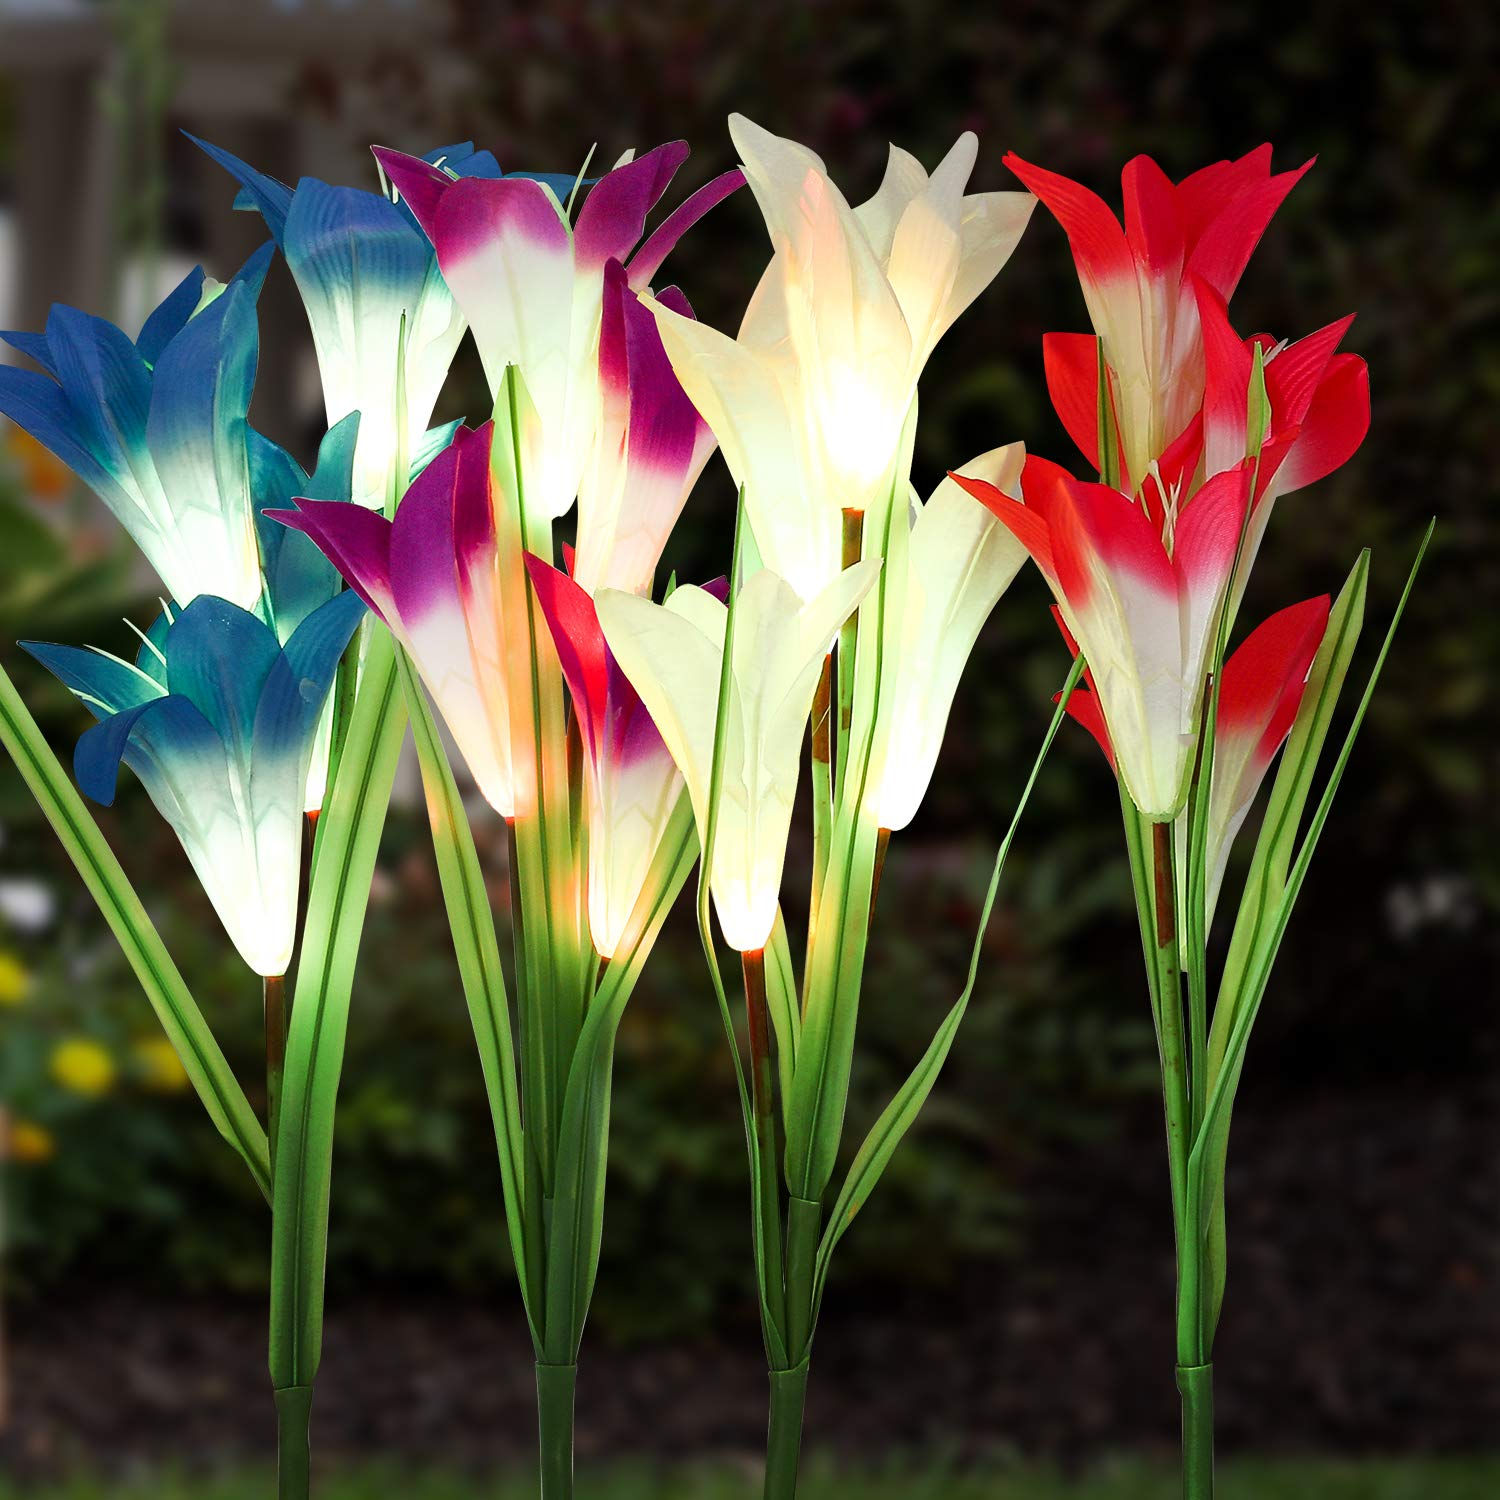 Solar Garden Stake Lights Outdoor, MayBest Solar Powered Lights, Lily Flower Lights, Multi-Color Changing LED Solar Decorative Lights for Garden Patio Yard Lawn Path (White+Purple+Red+Blue)